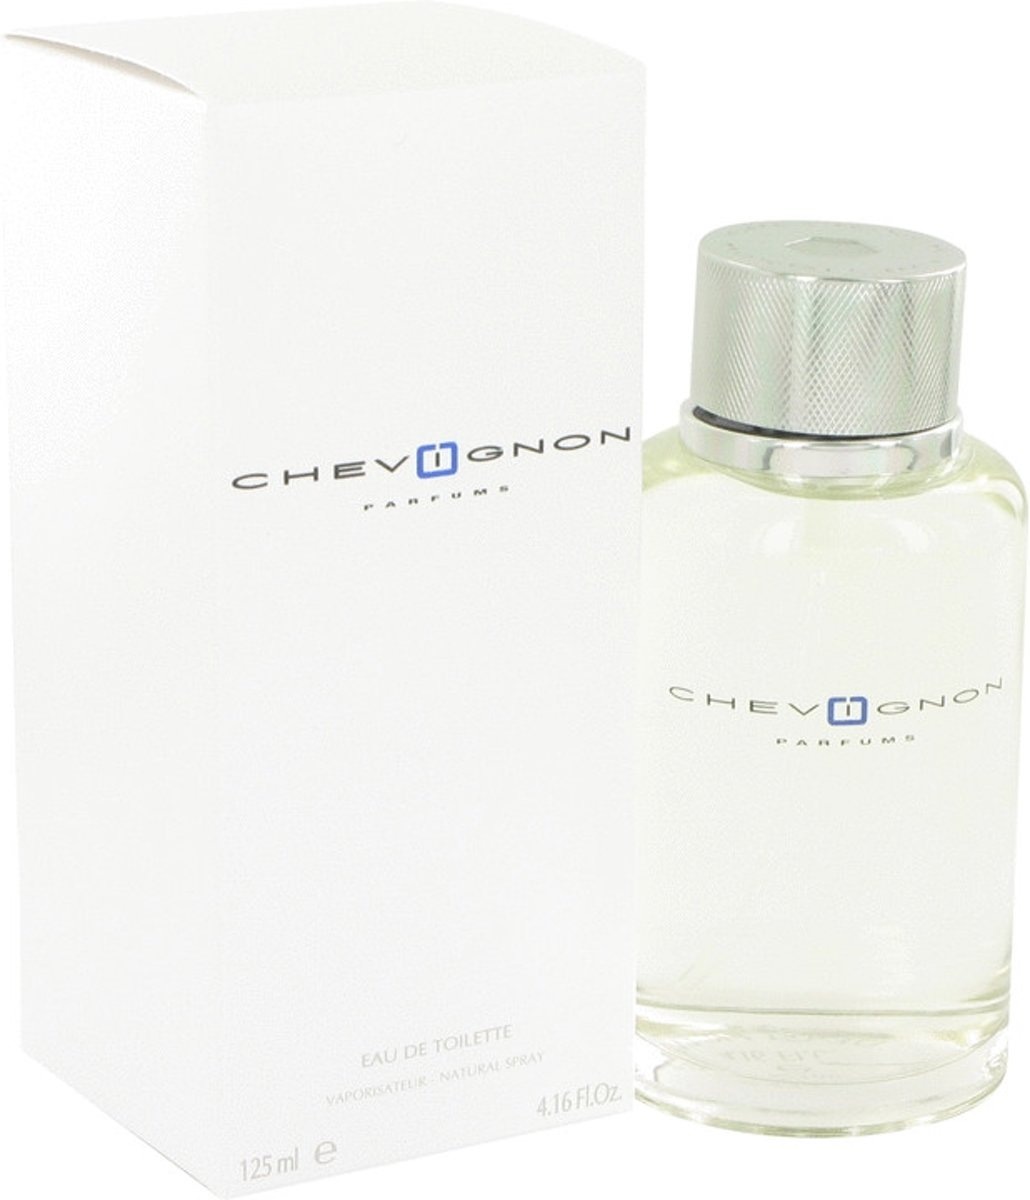 CHEVIGNON PARFUMS EdT Spray 125 ml